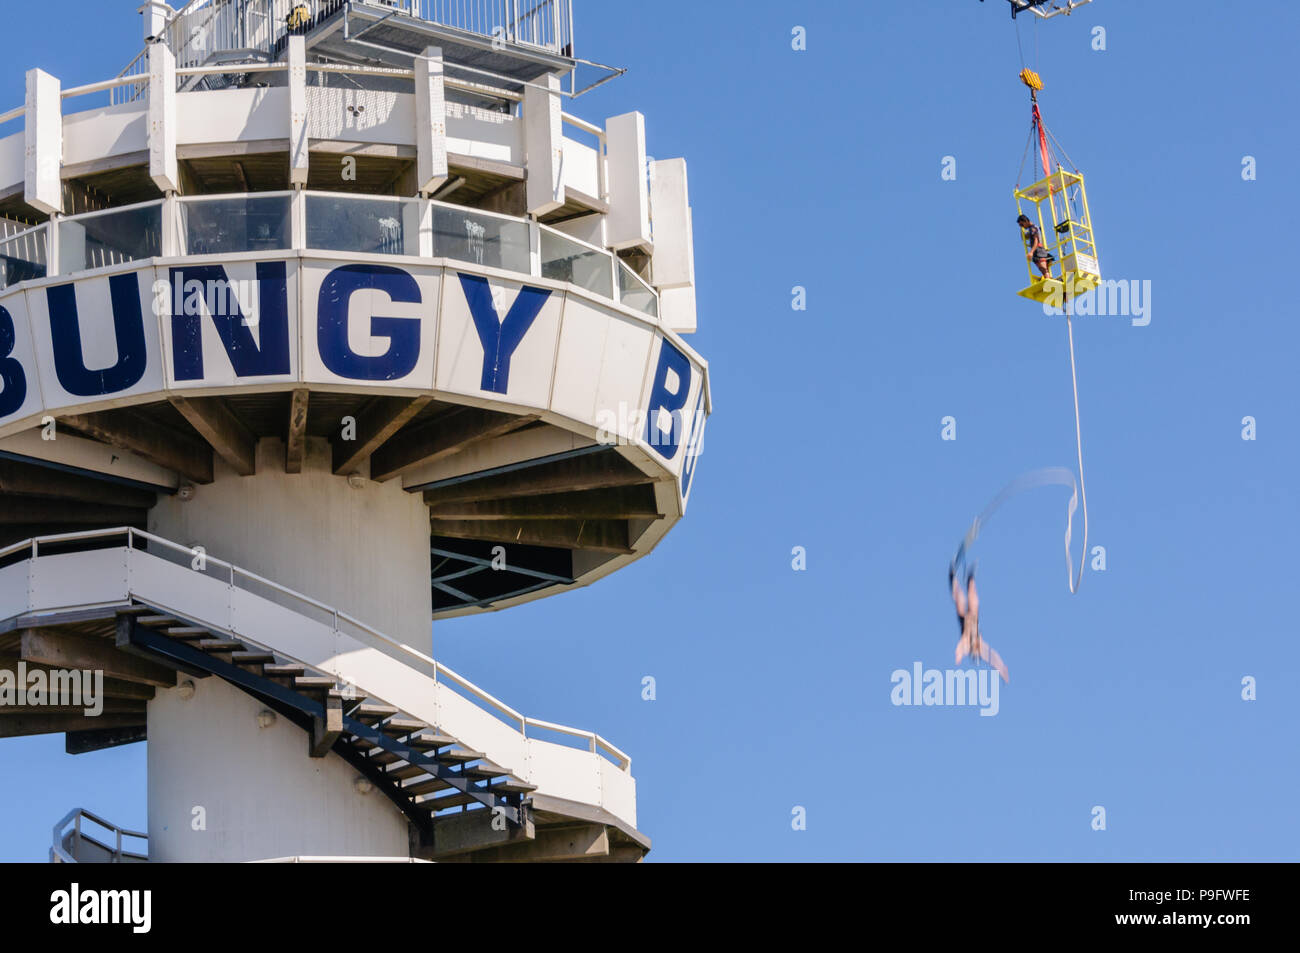 Bungy jumping at Schevinengen Pier, The Hague, Netherlands Stock Photo